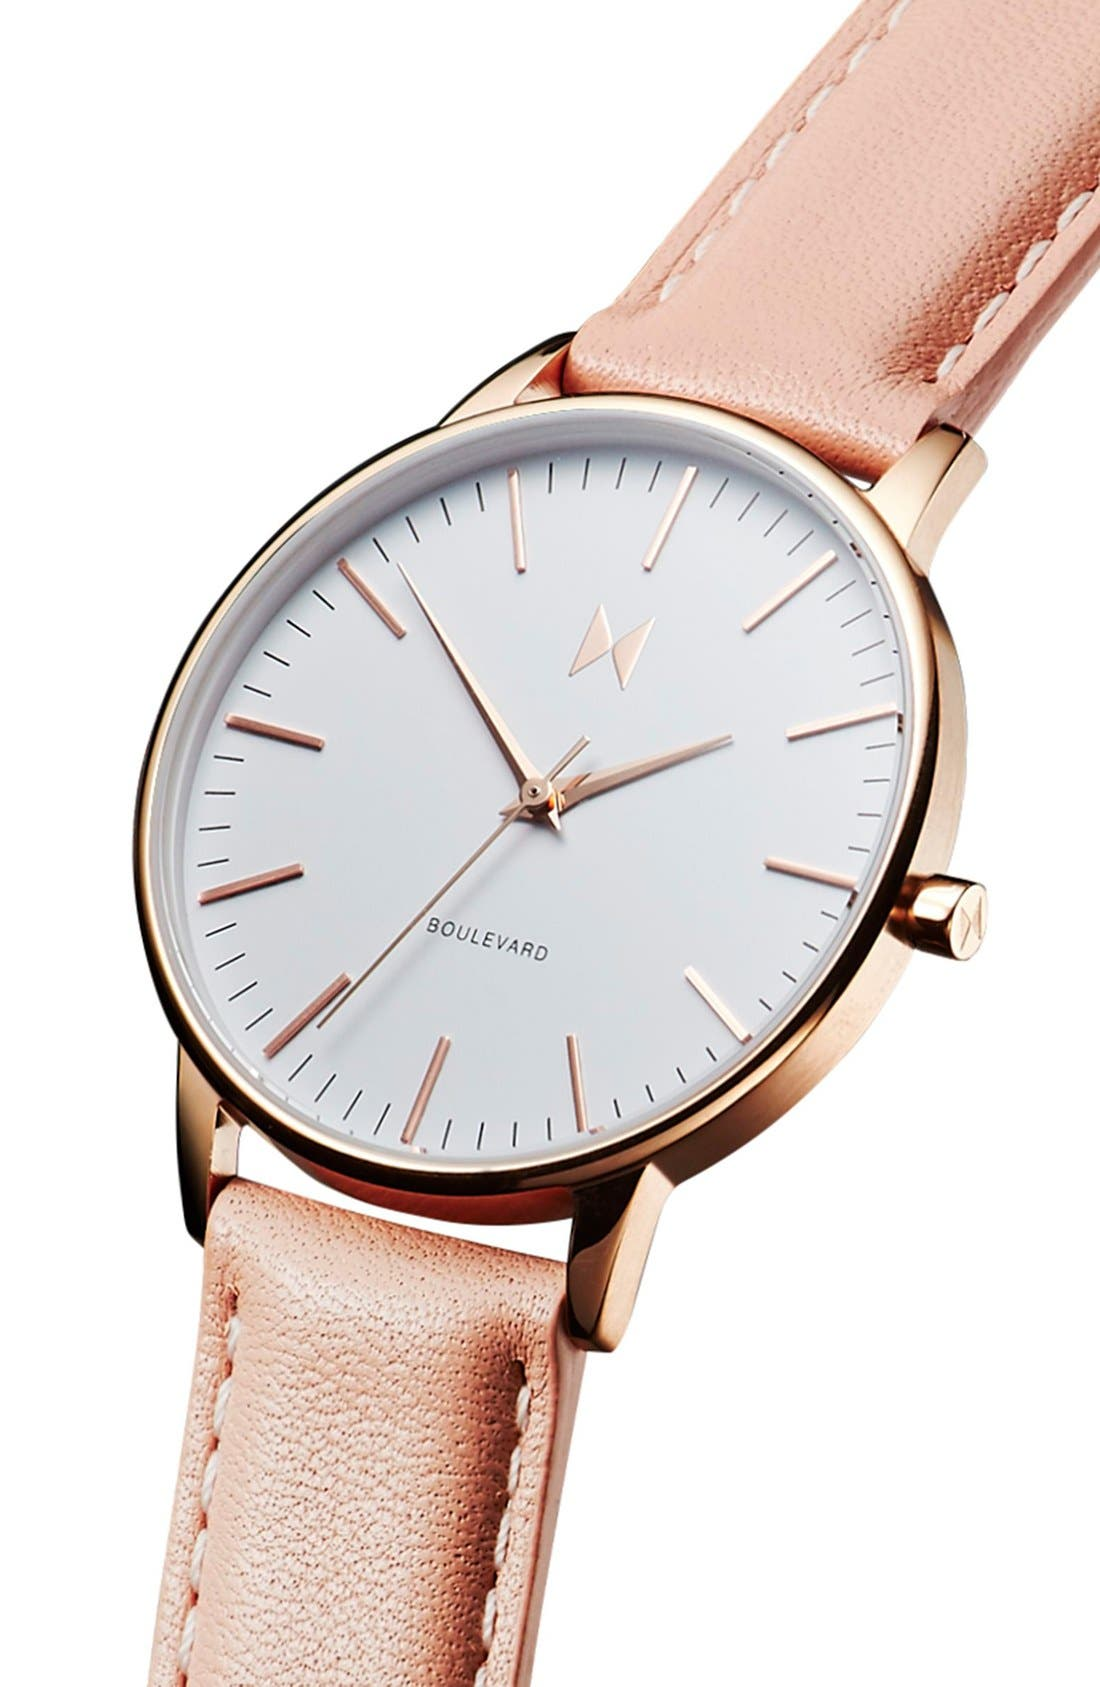 Boulevard Leather Strap Watch, 38mm,                             Alternate thumbnail 4, color,                             PEACH/ WHITE/ ROSE GOLD